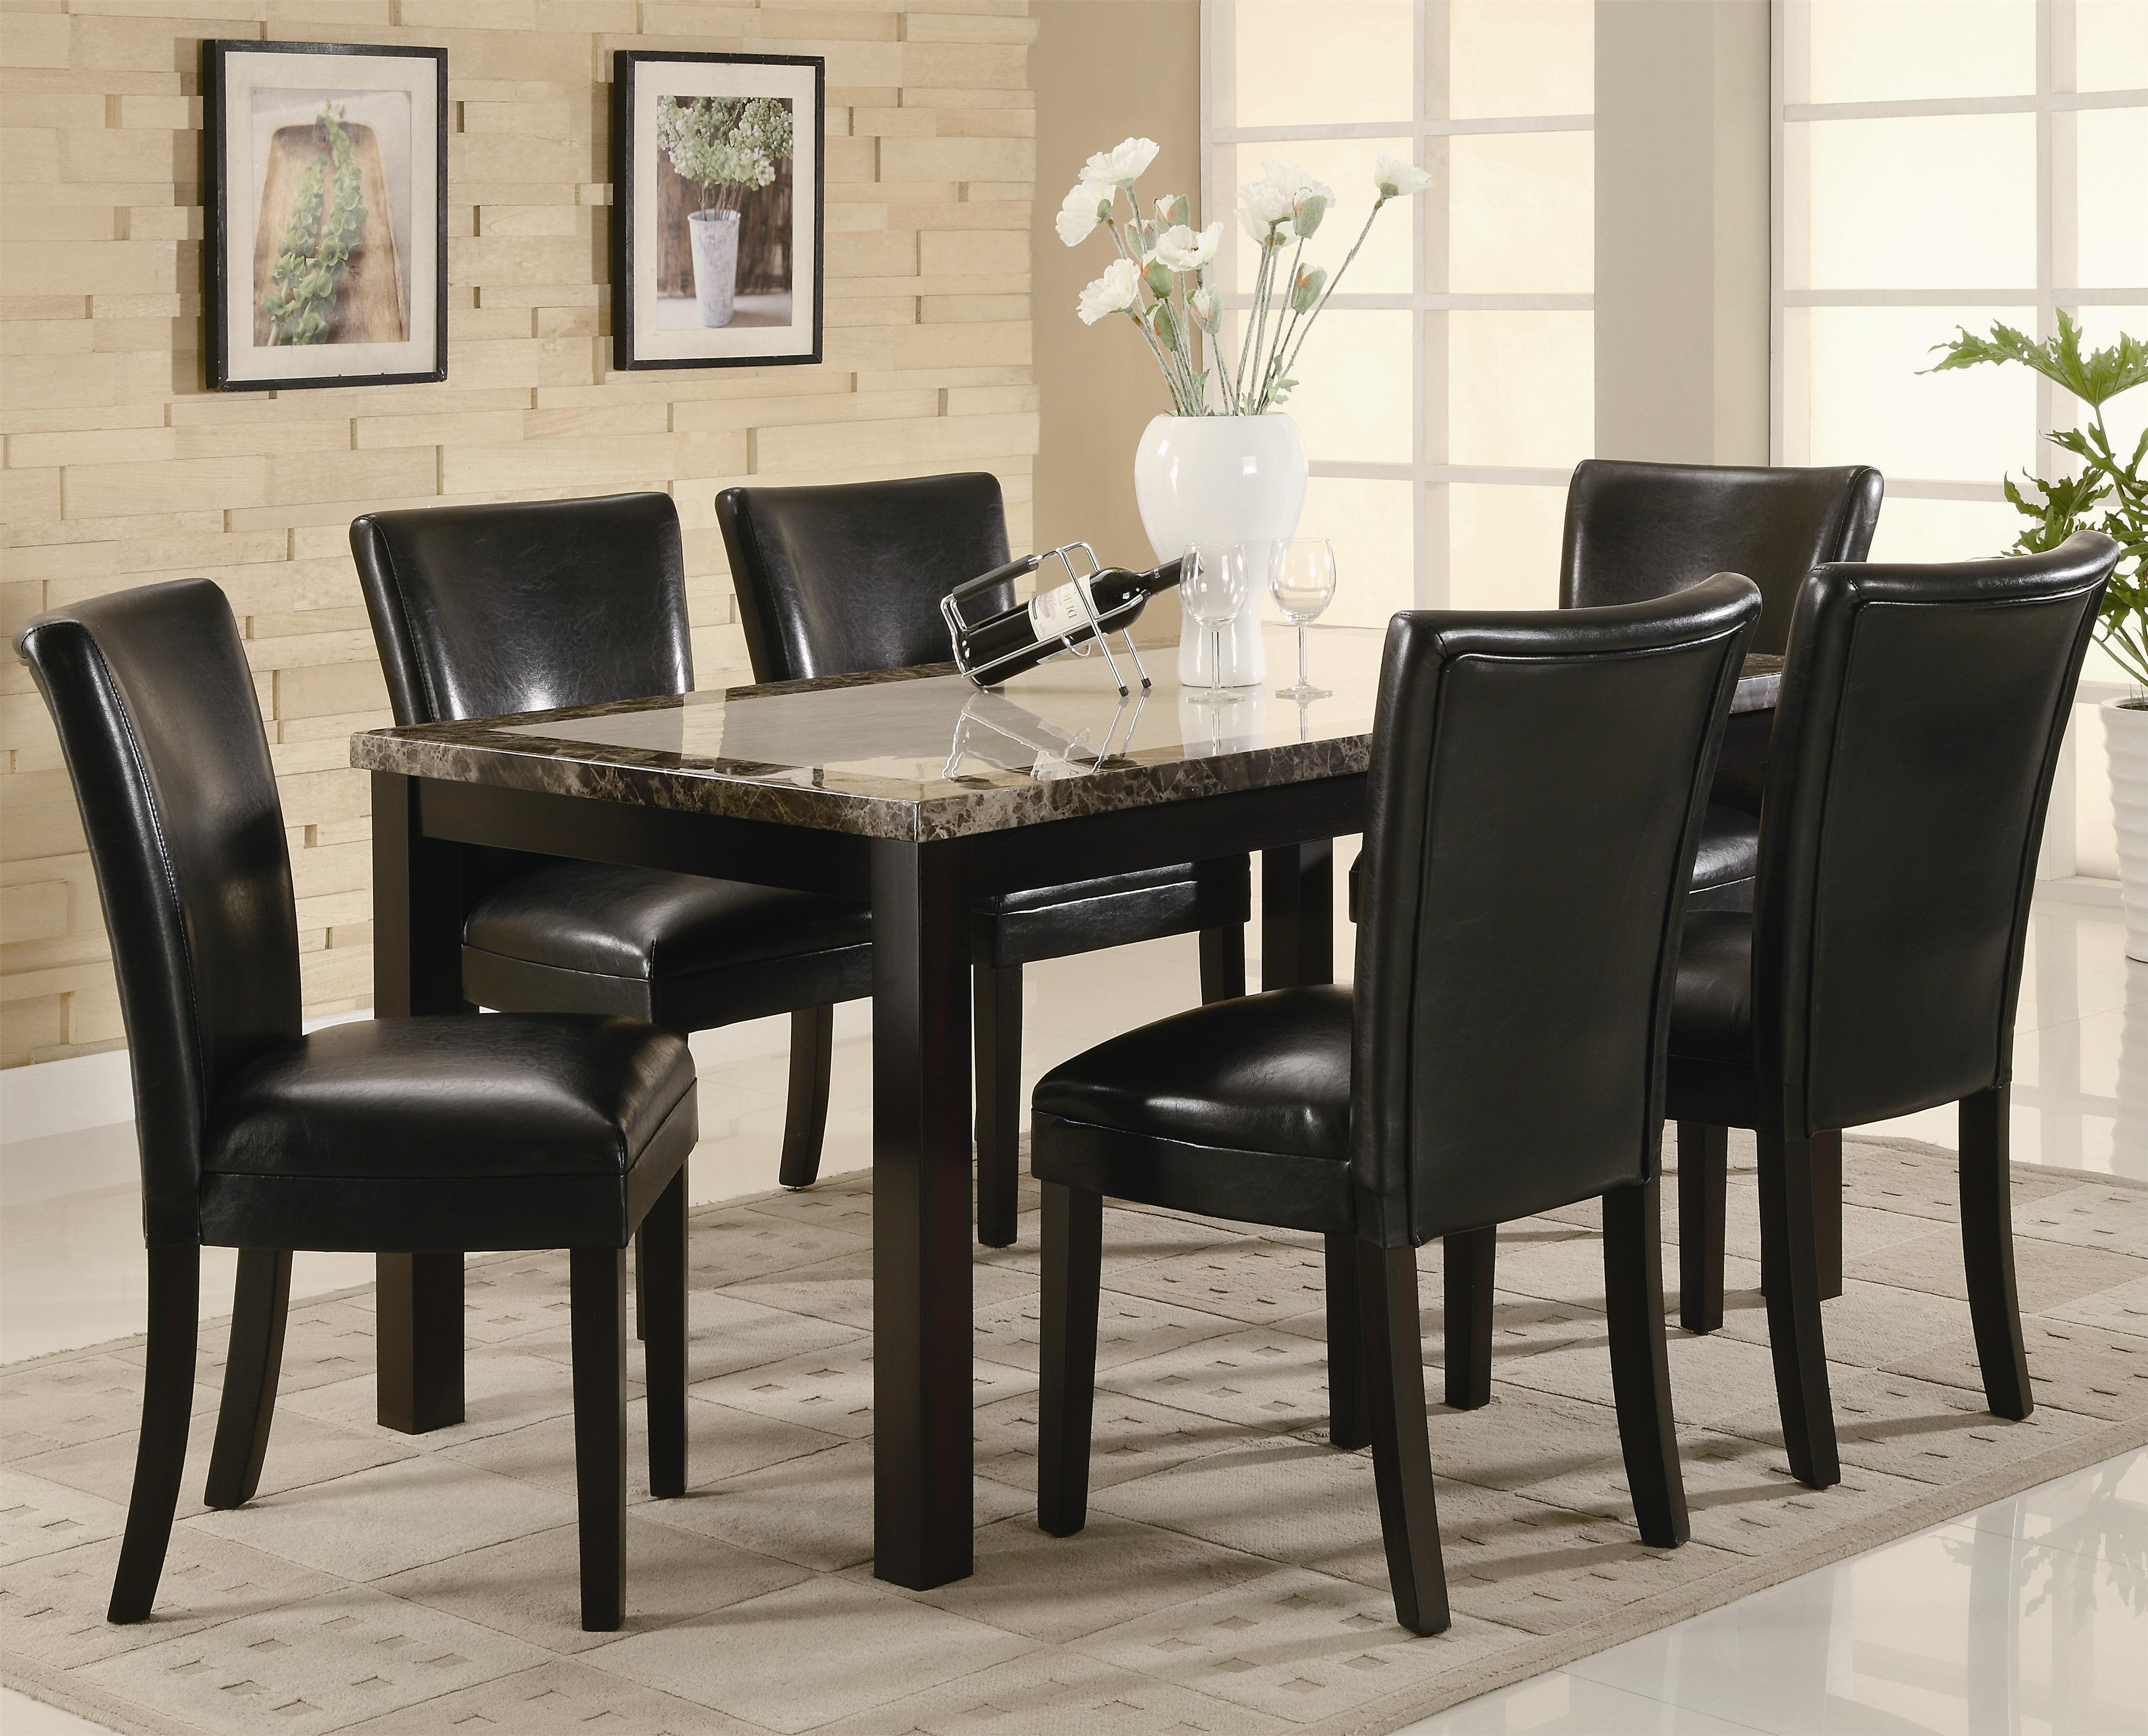 Coaster Carter 7 Piece Dining Table Set - Item Number: 102260+6x2